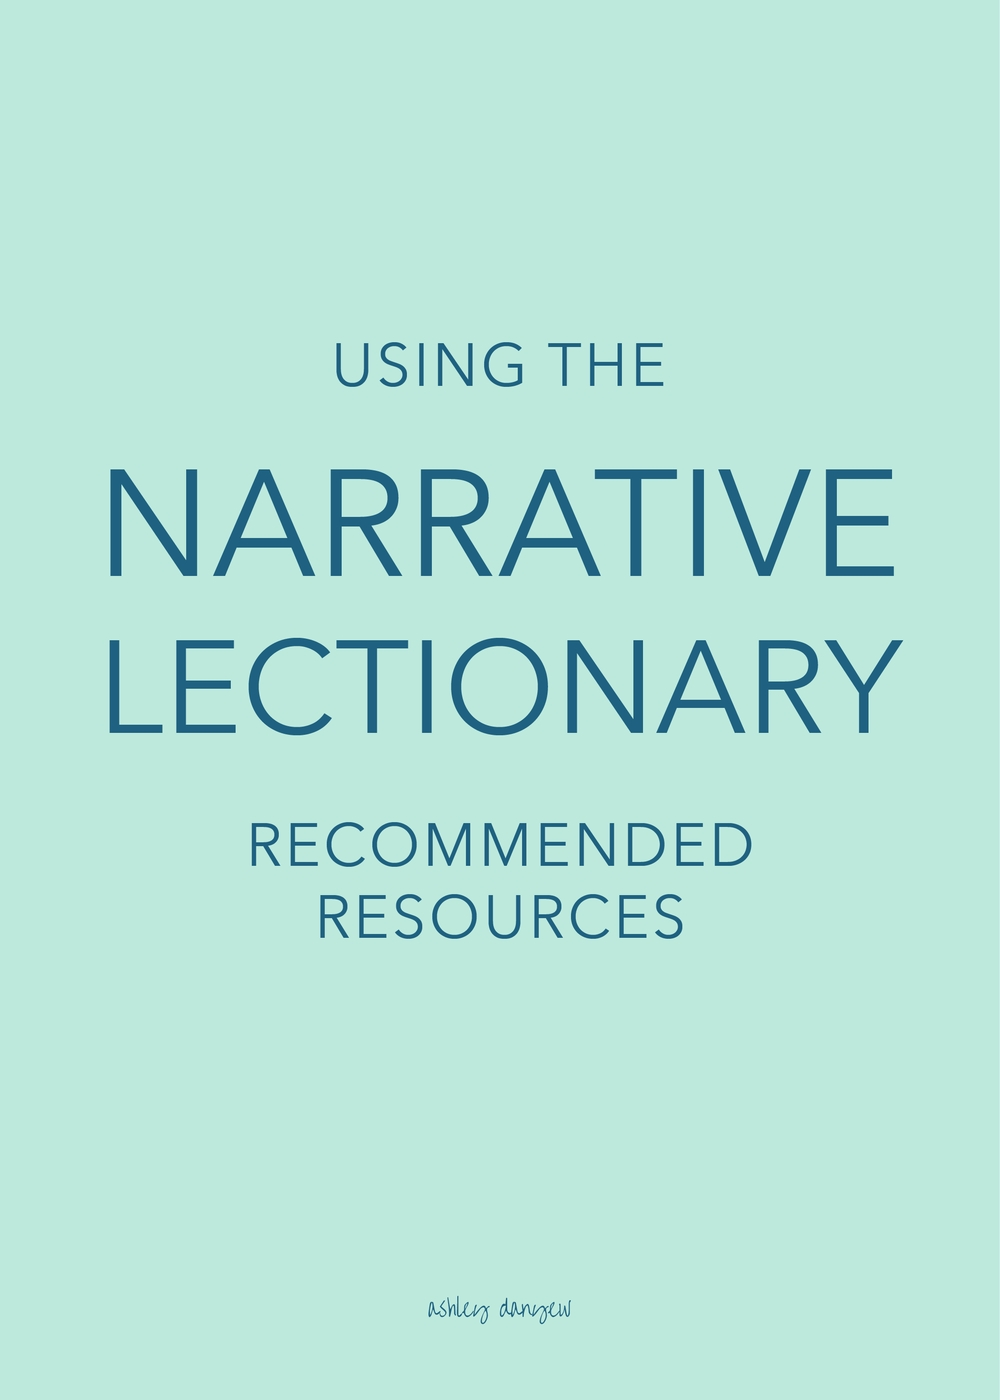 Using The Narrative Lectionary: Recommended Resources  Printable Lectionary